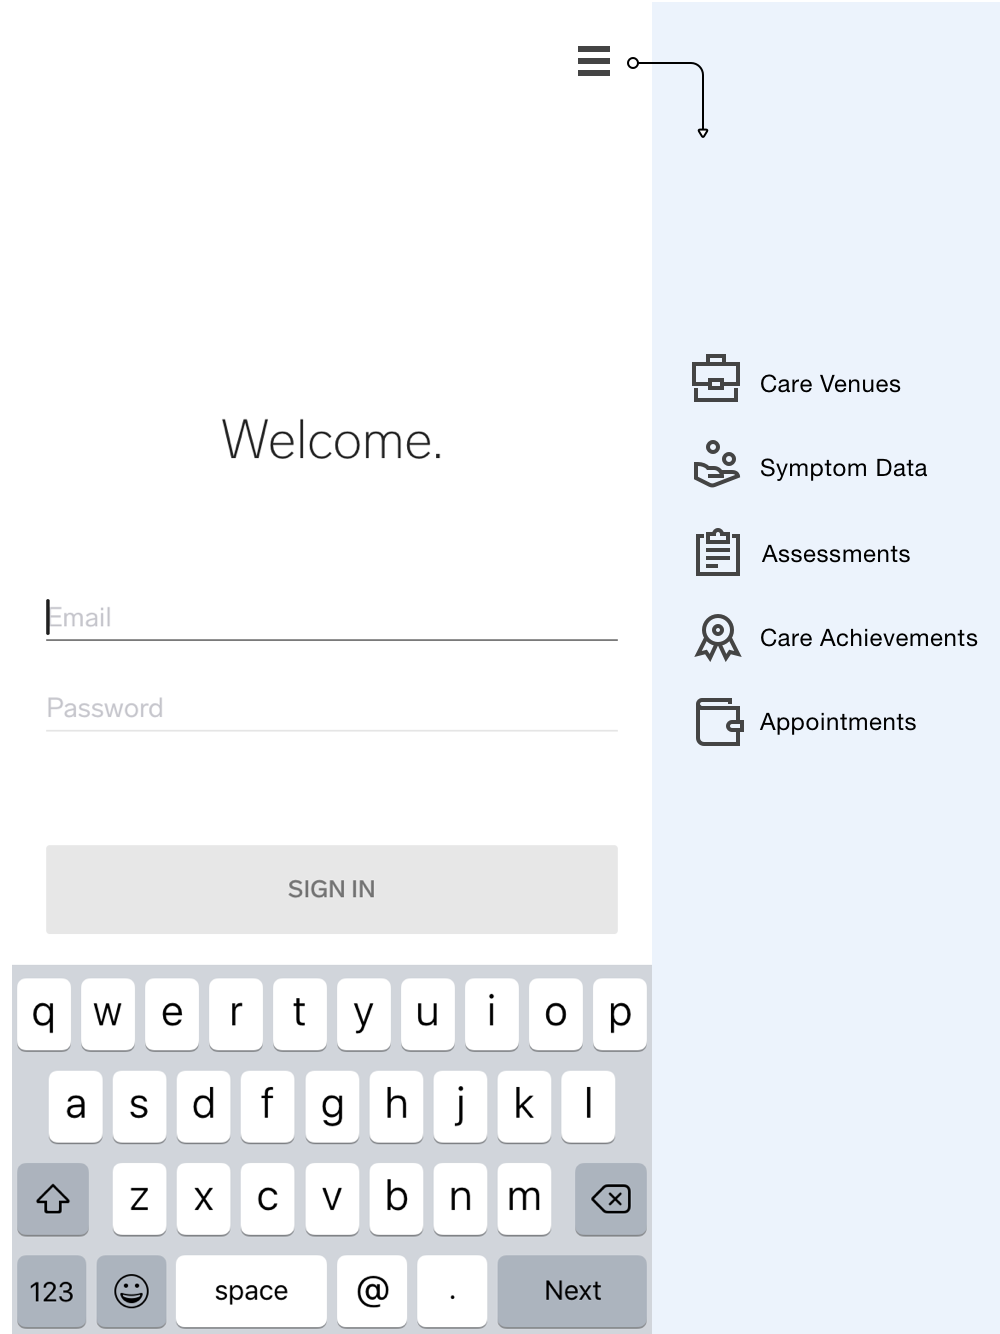 Authenticated view of care data suitcase - The plan member authenticates only at the very last possible gateway. This allows for crisis modalities of care. Once authenticated the data aggregates into their personal profile.